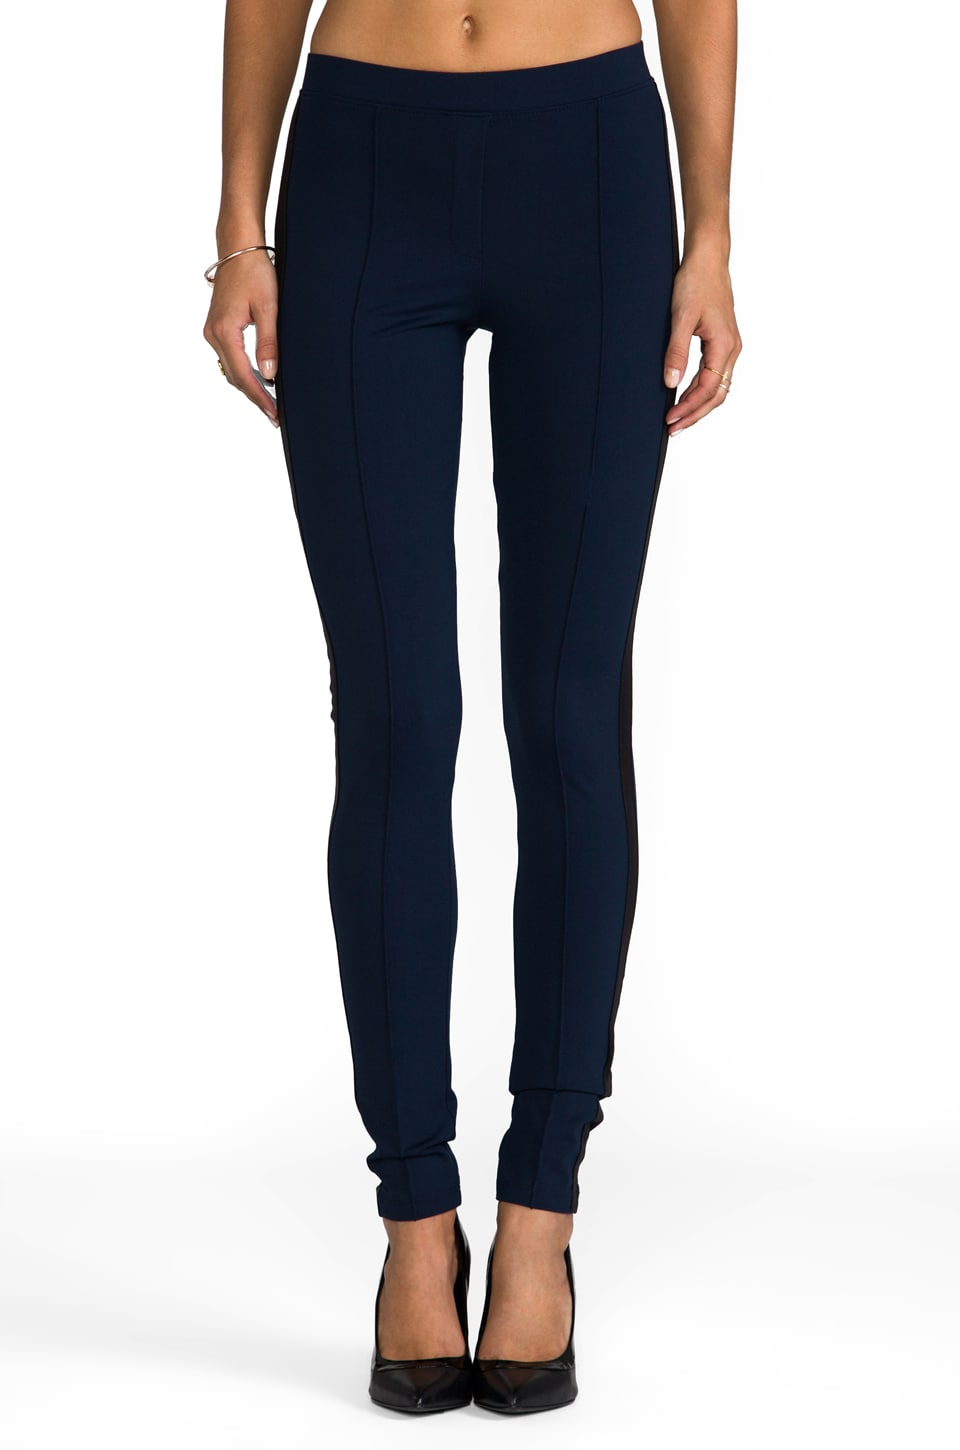 David Lerner The Astor Legging in Navy/Black